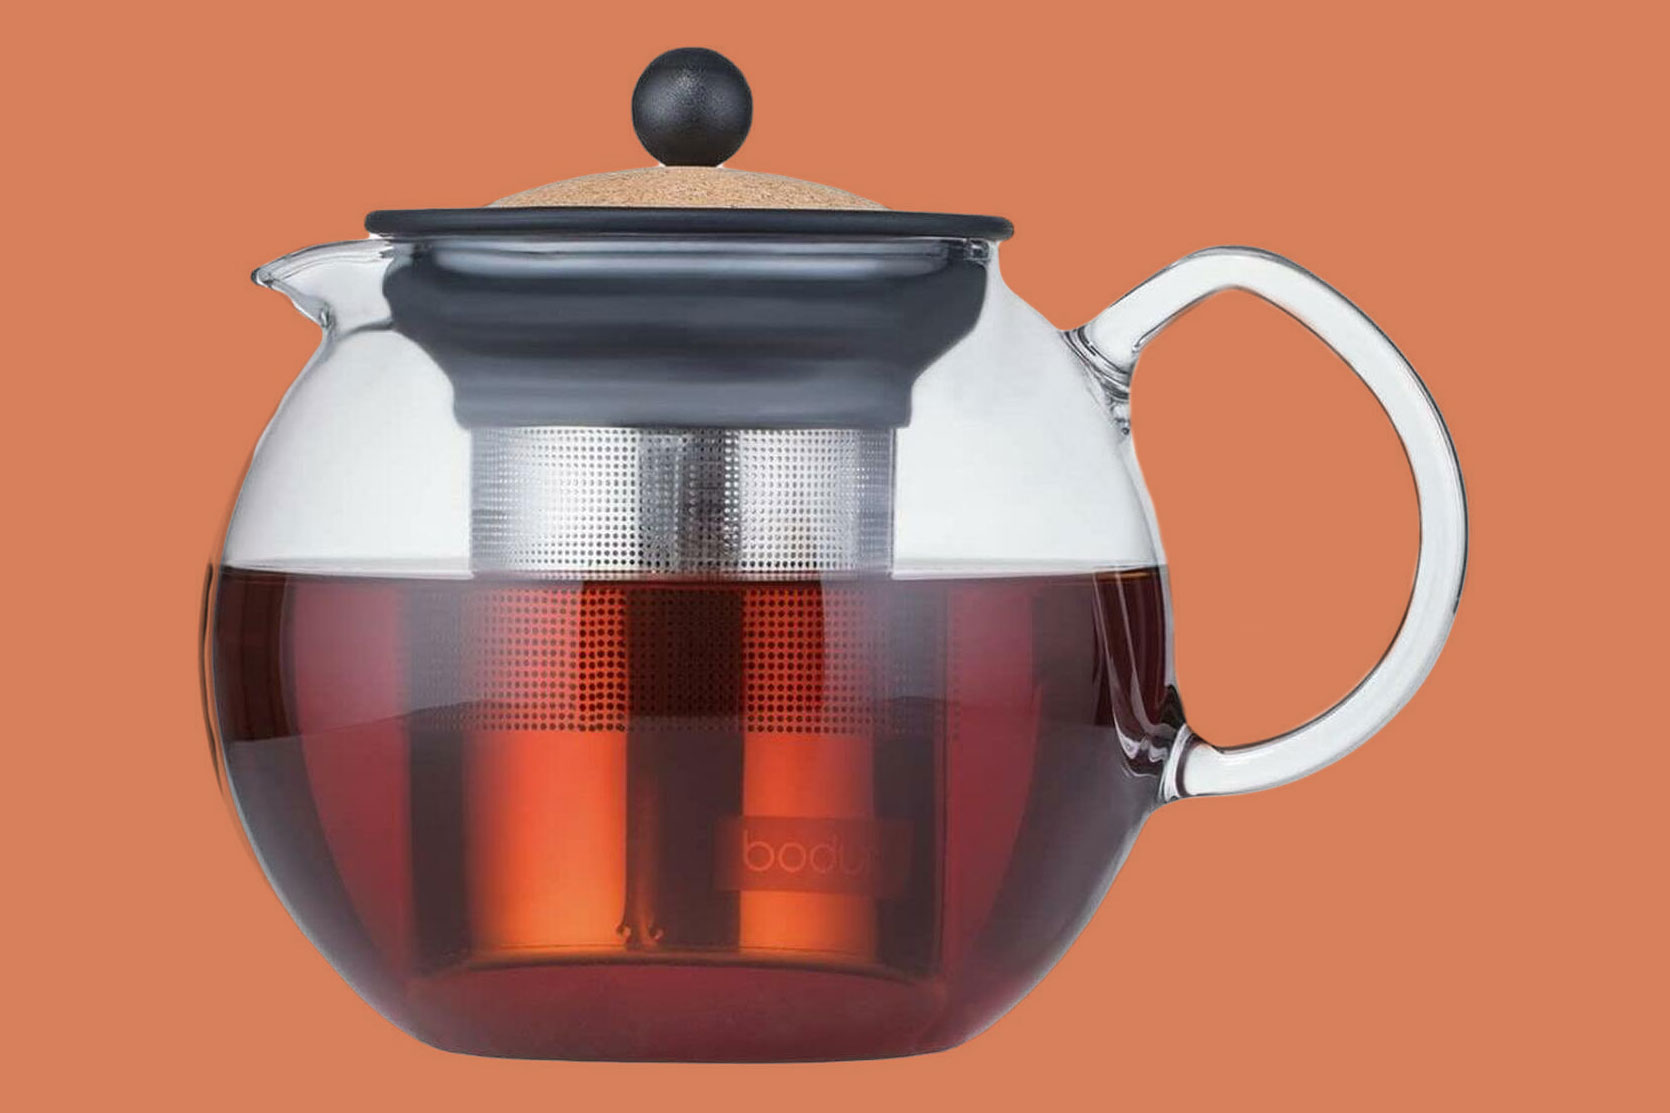 Bodum Assam Glass Teapot with Stainless Steel Filter